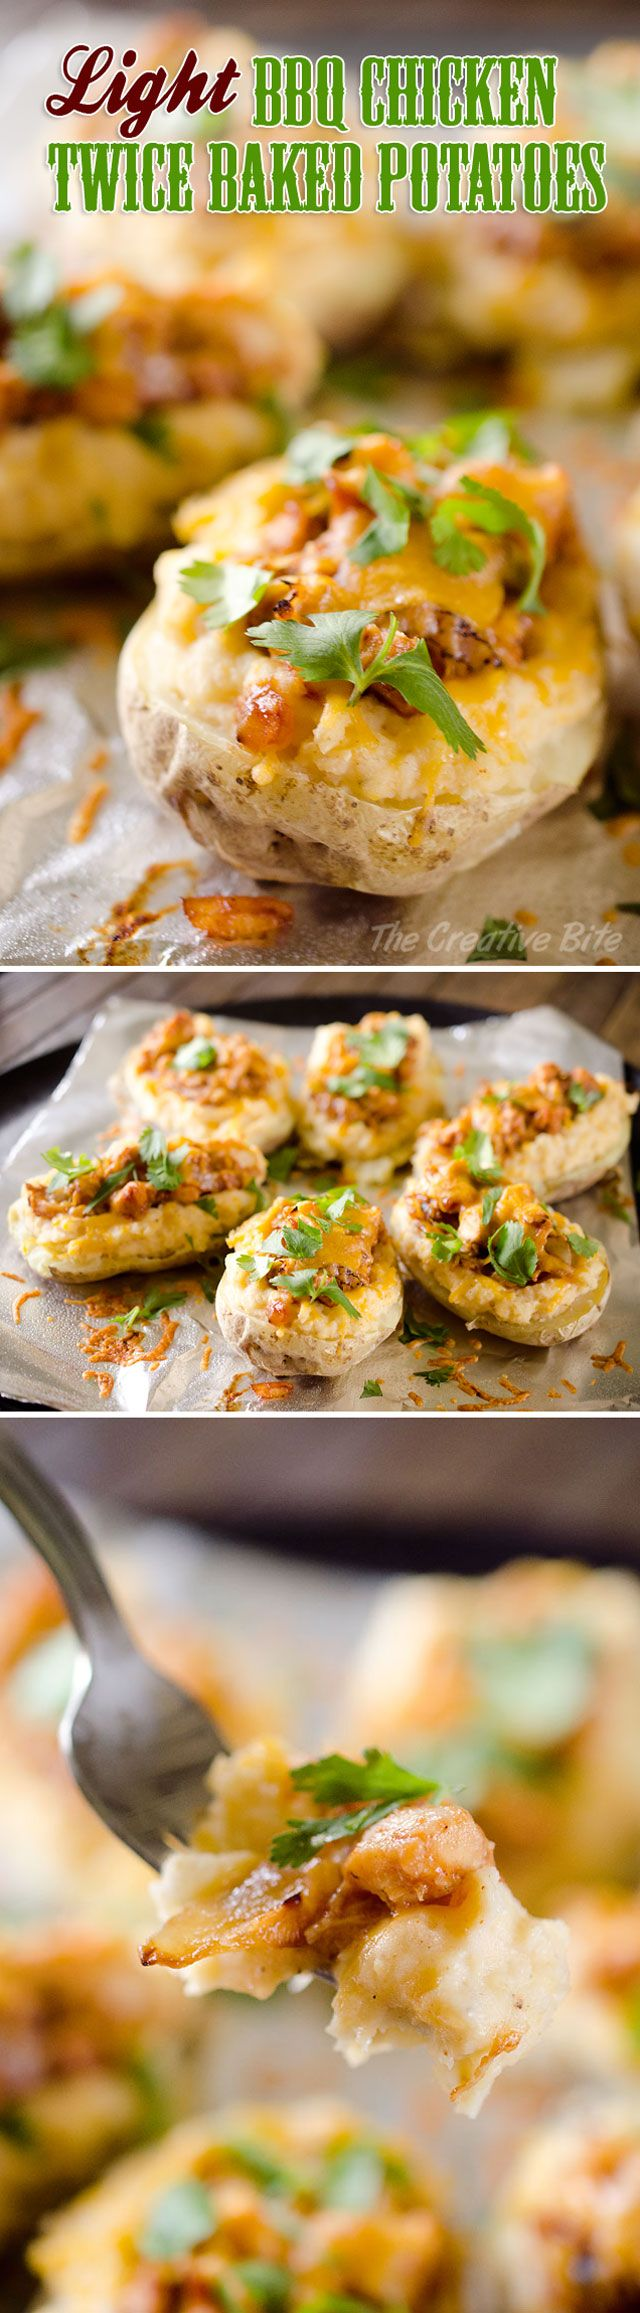 cheese parmesan cheese 25 sites like foodgawker with links to submit ...